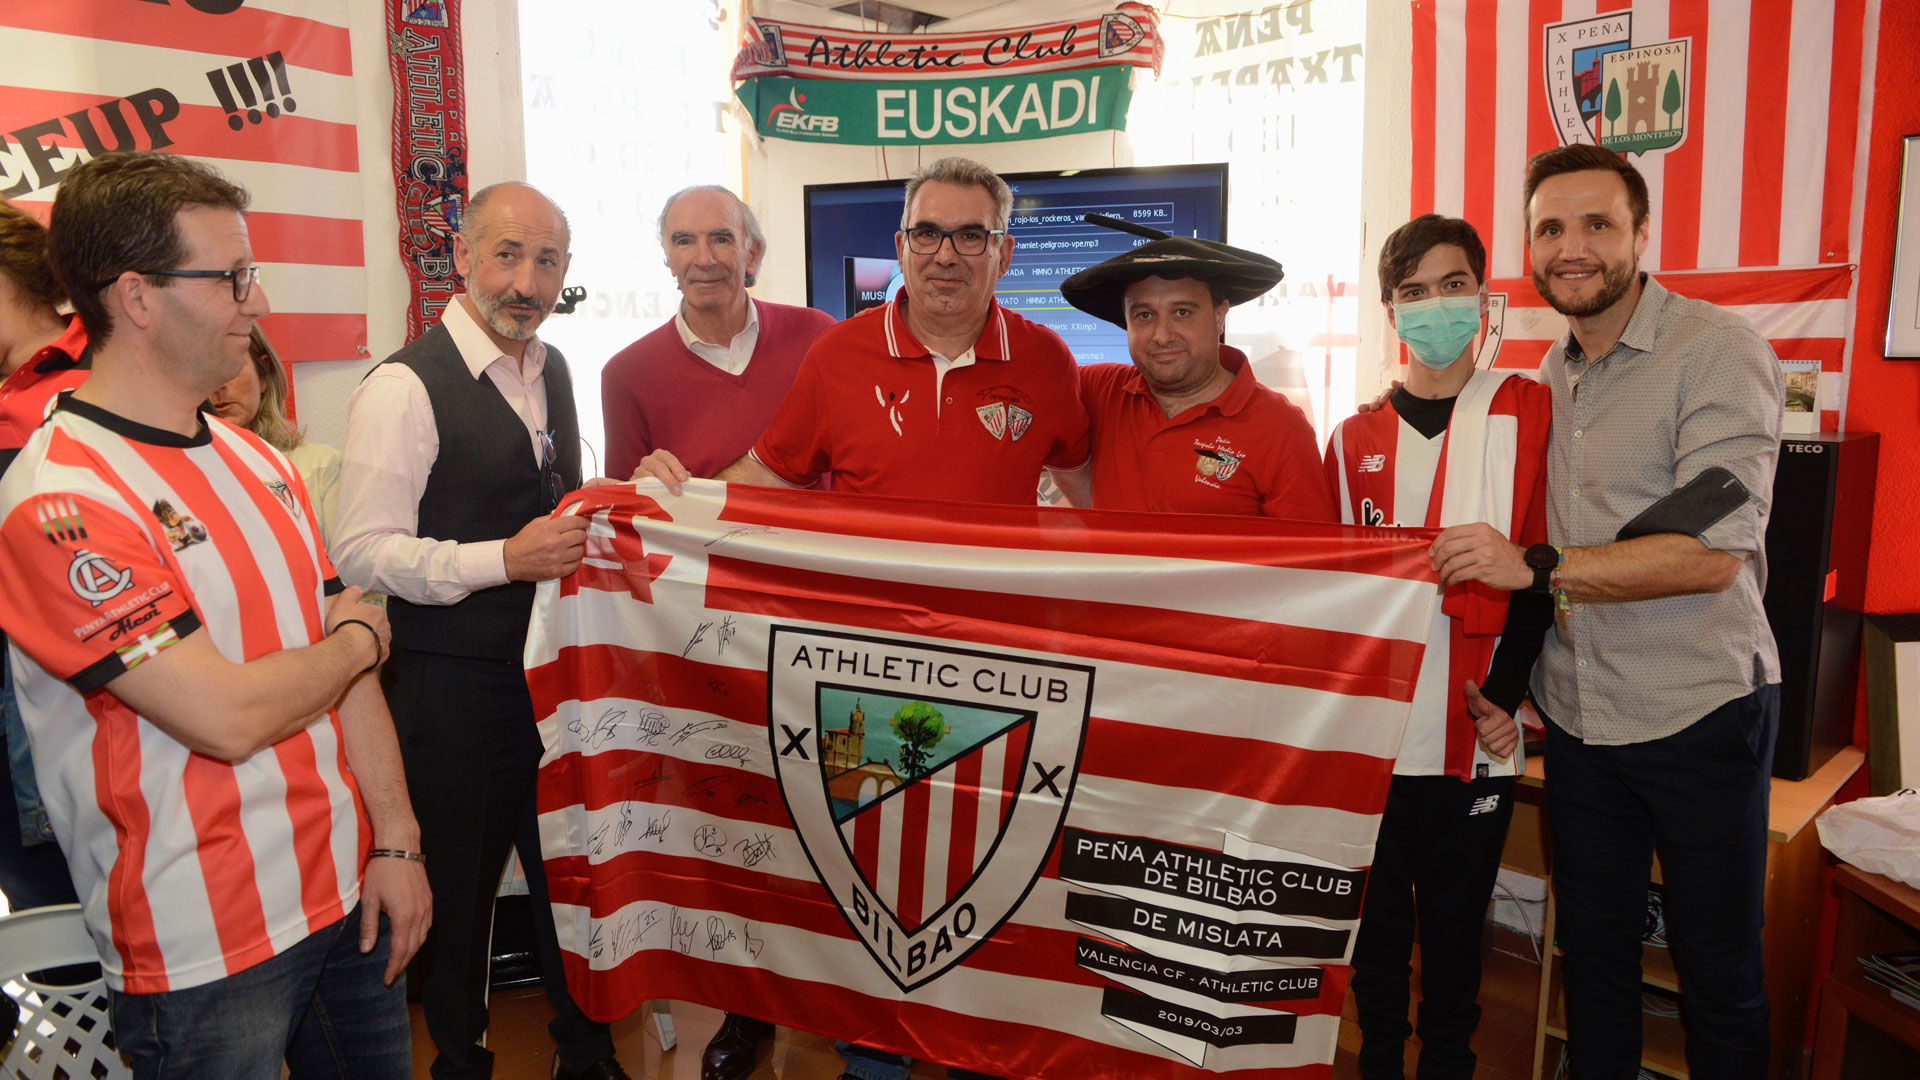 Alicante and Valencia embrace Athletic